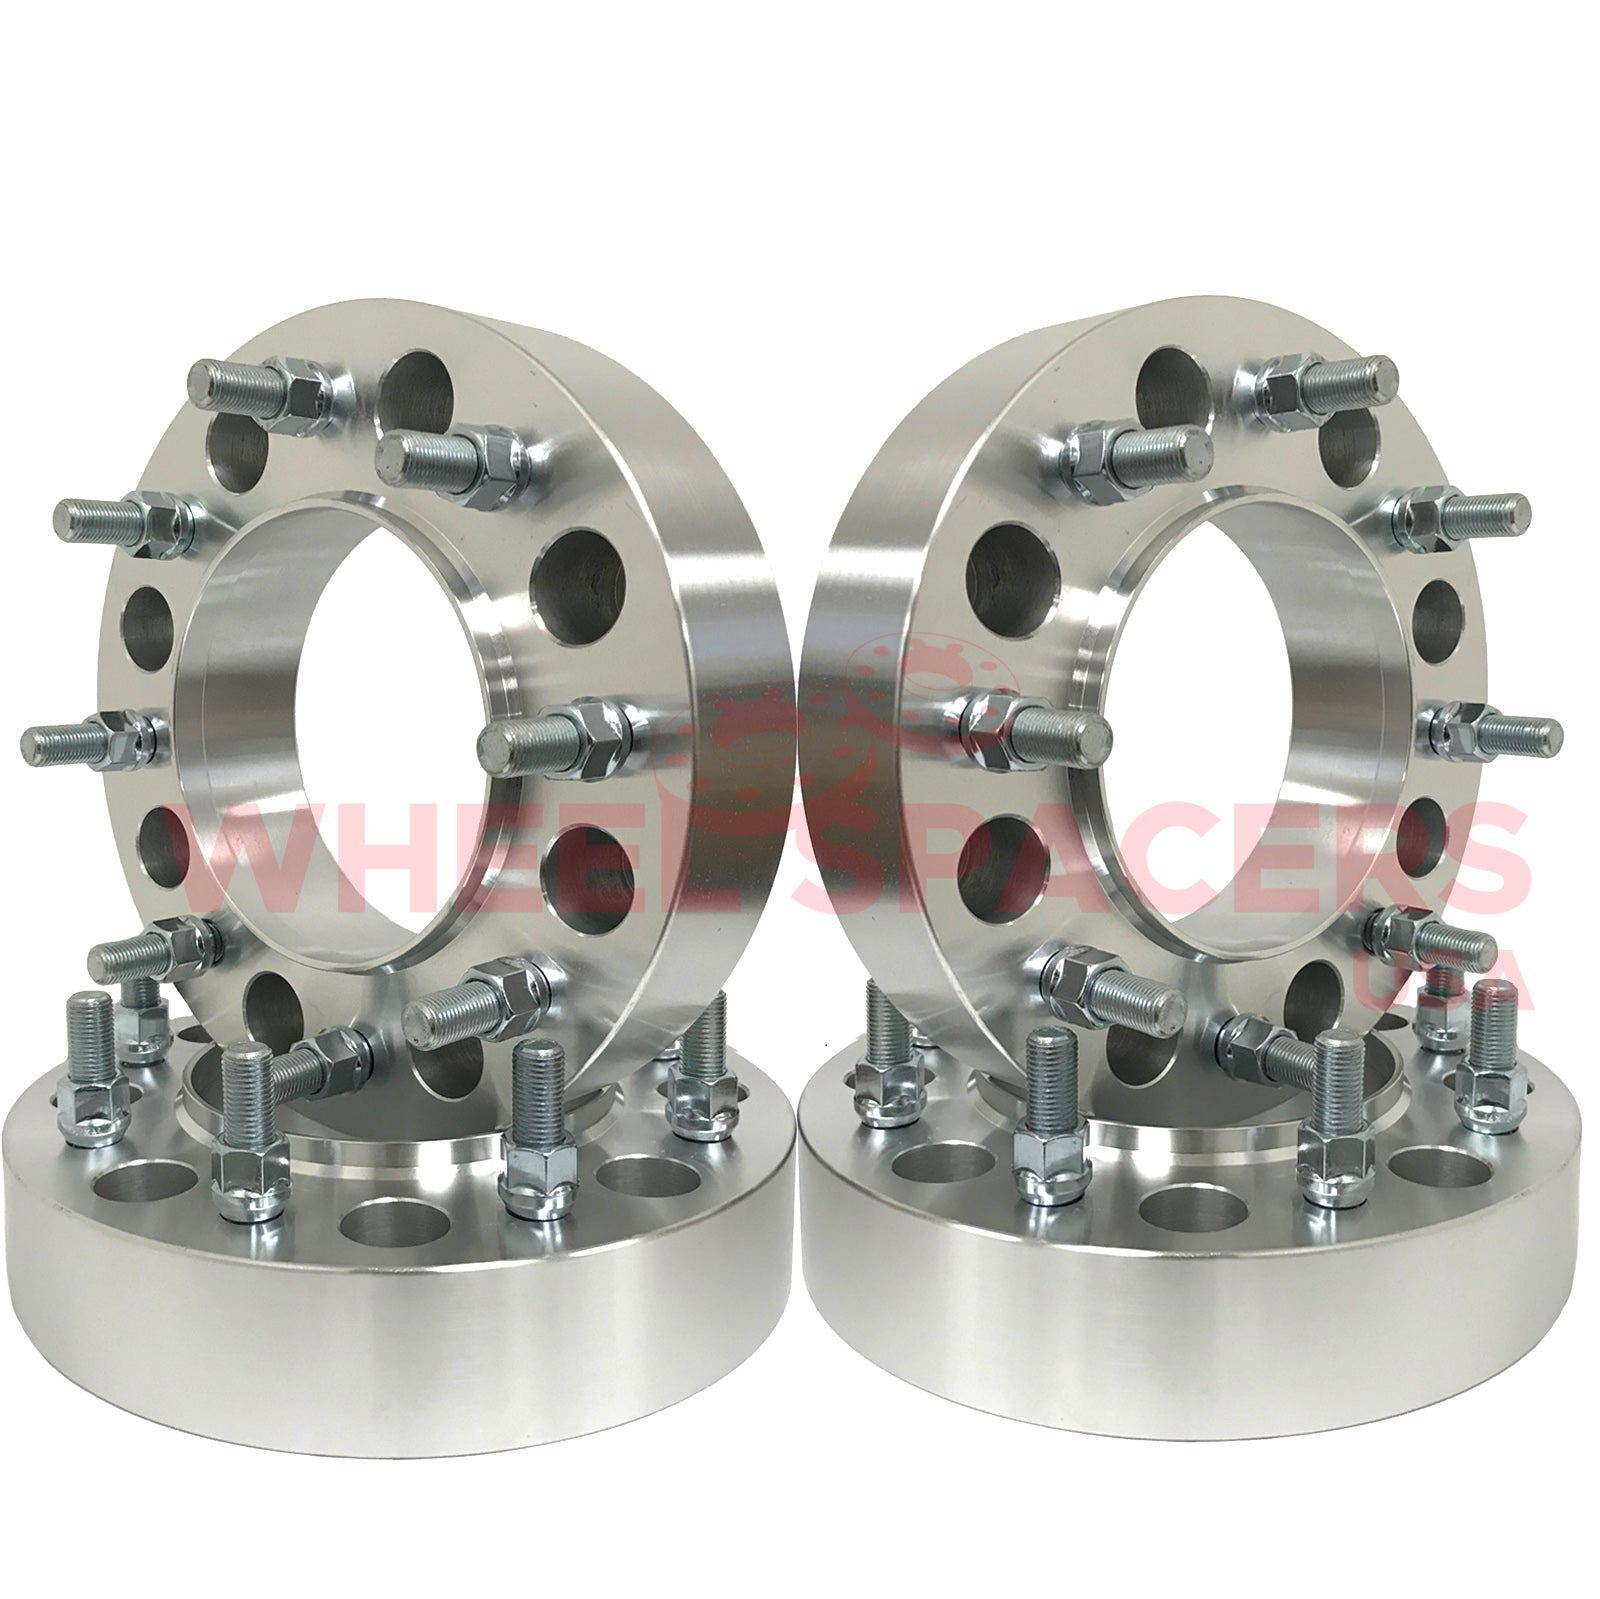 2002 f350 dually wheel spacers